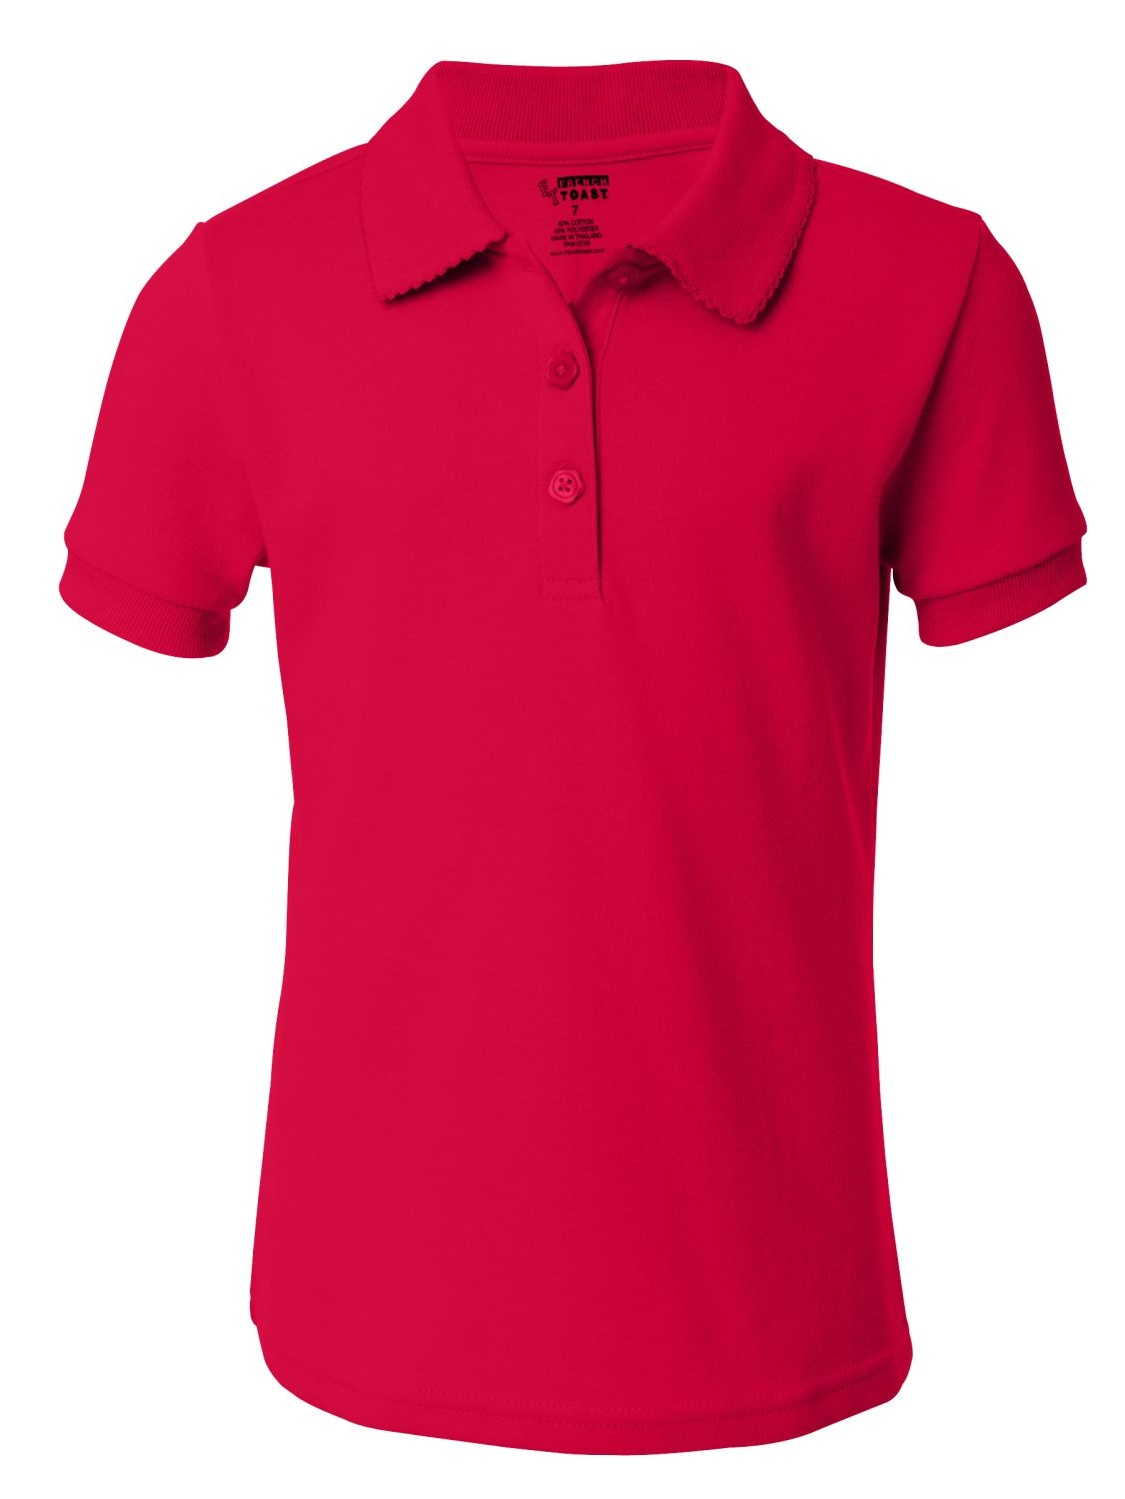 French Toast A9423 Girls' Short Sleeve Picot Polo